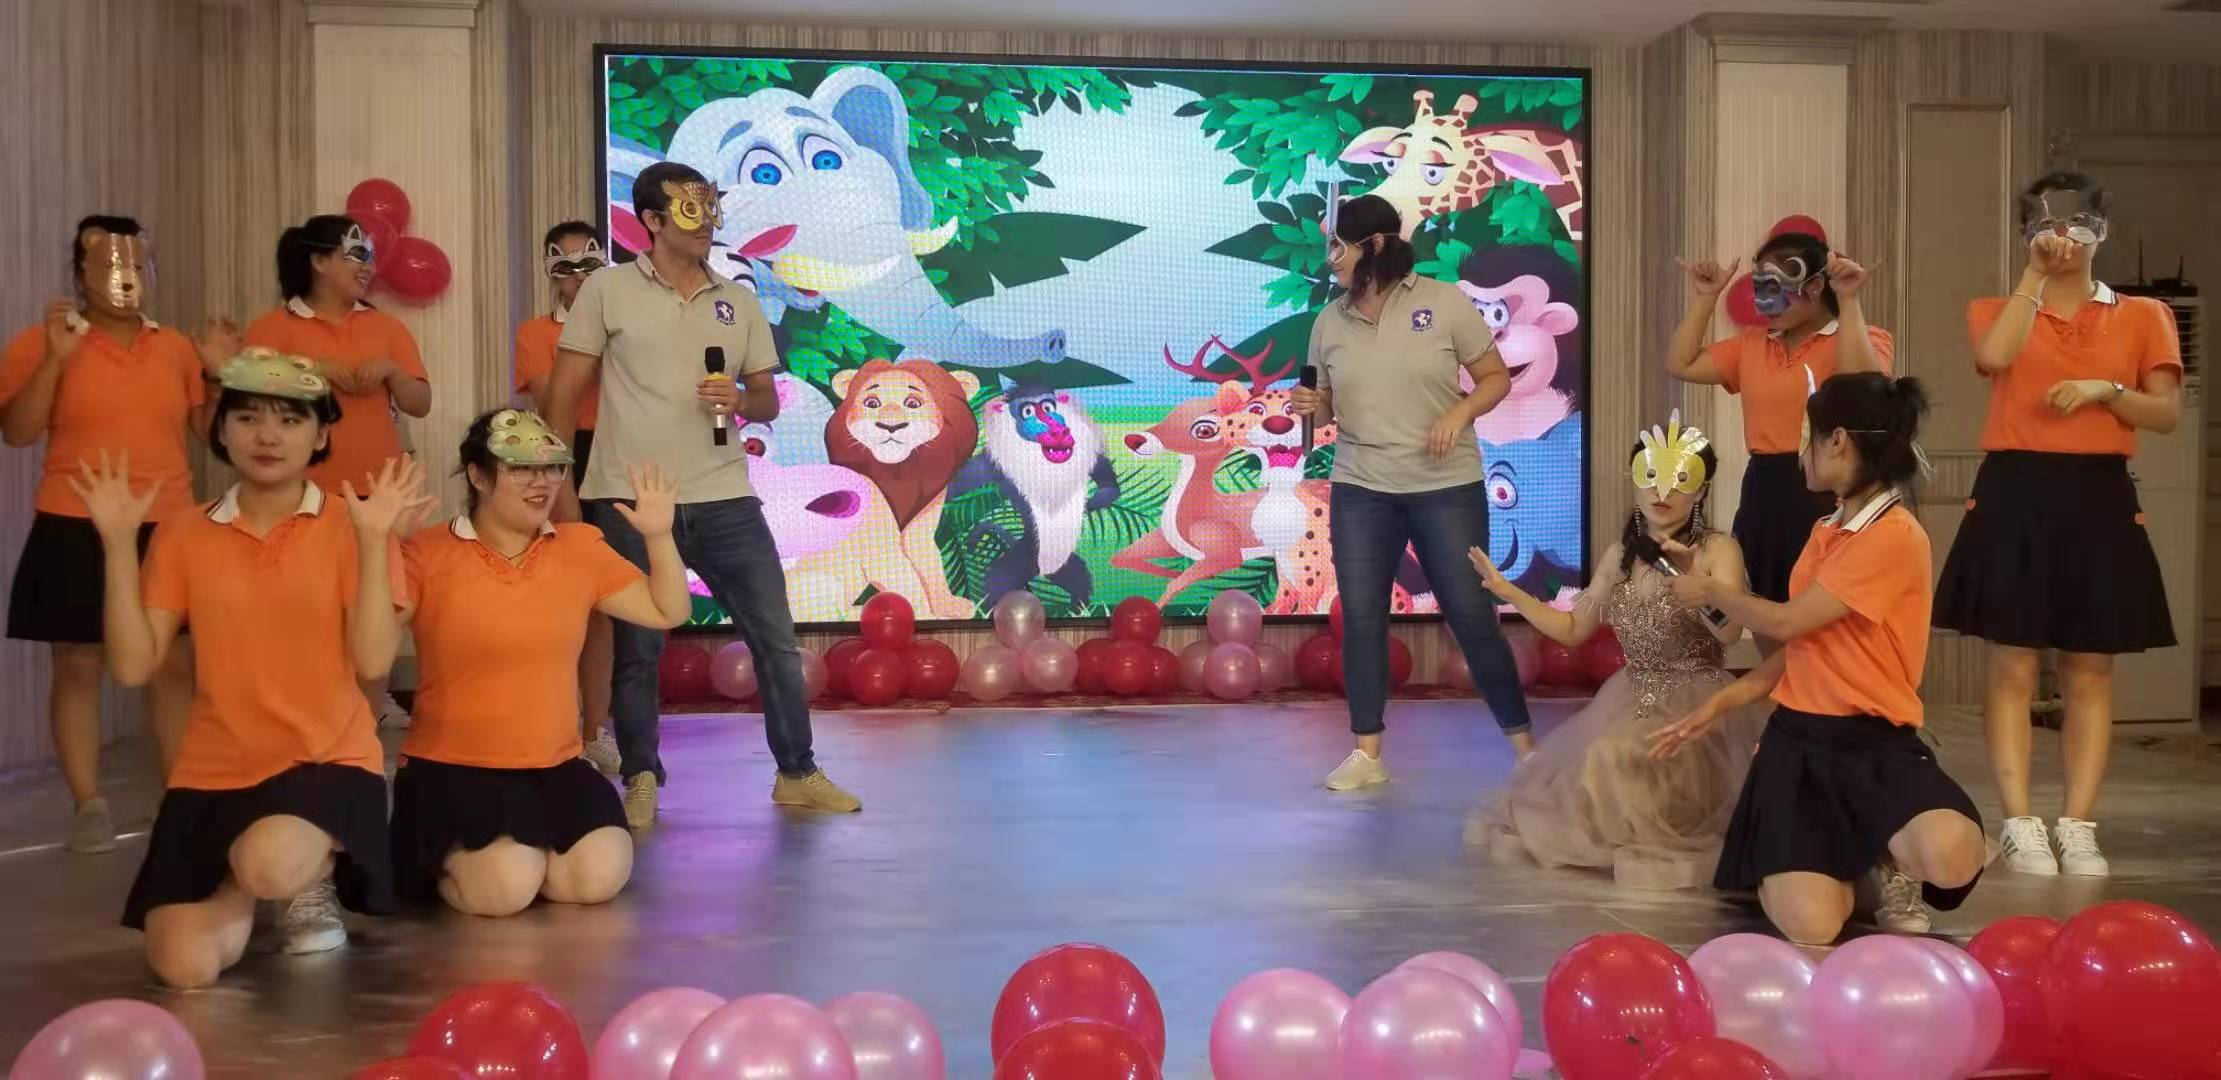 Teachers' performance at a Chinese kindergarten graduation